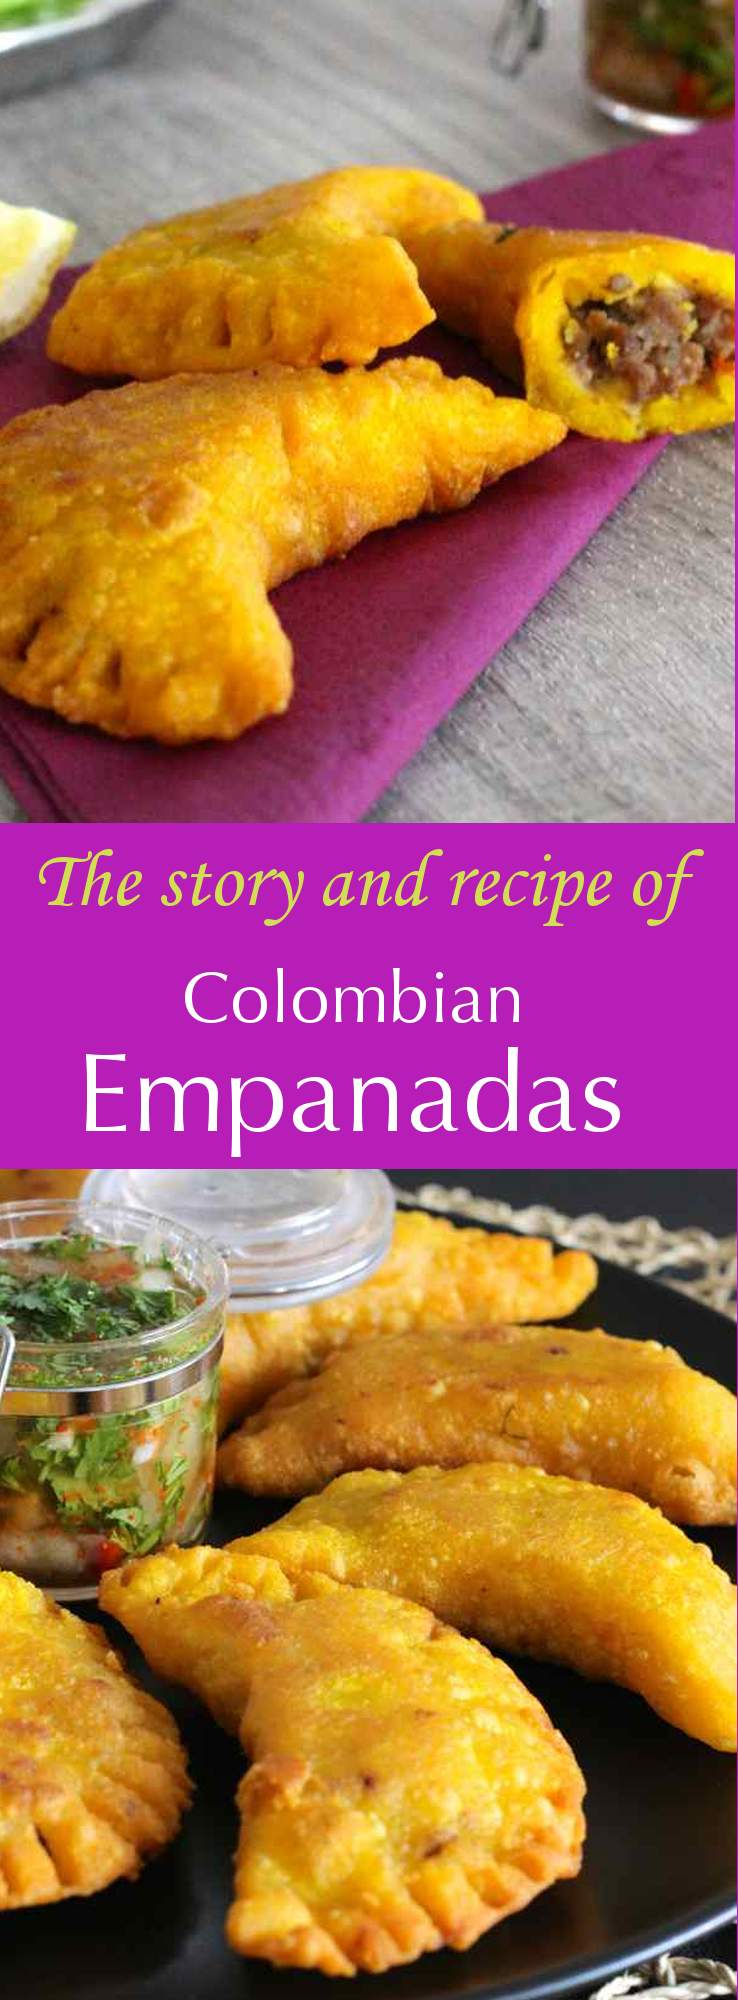 Empanadas are turnovers filled with Spanish and South American origins that are stuffed differently in different countries and regions.